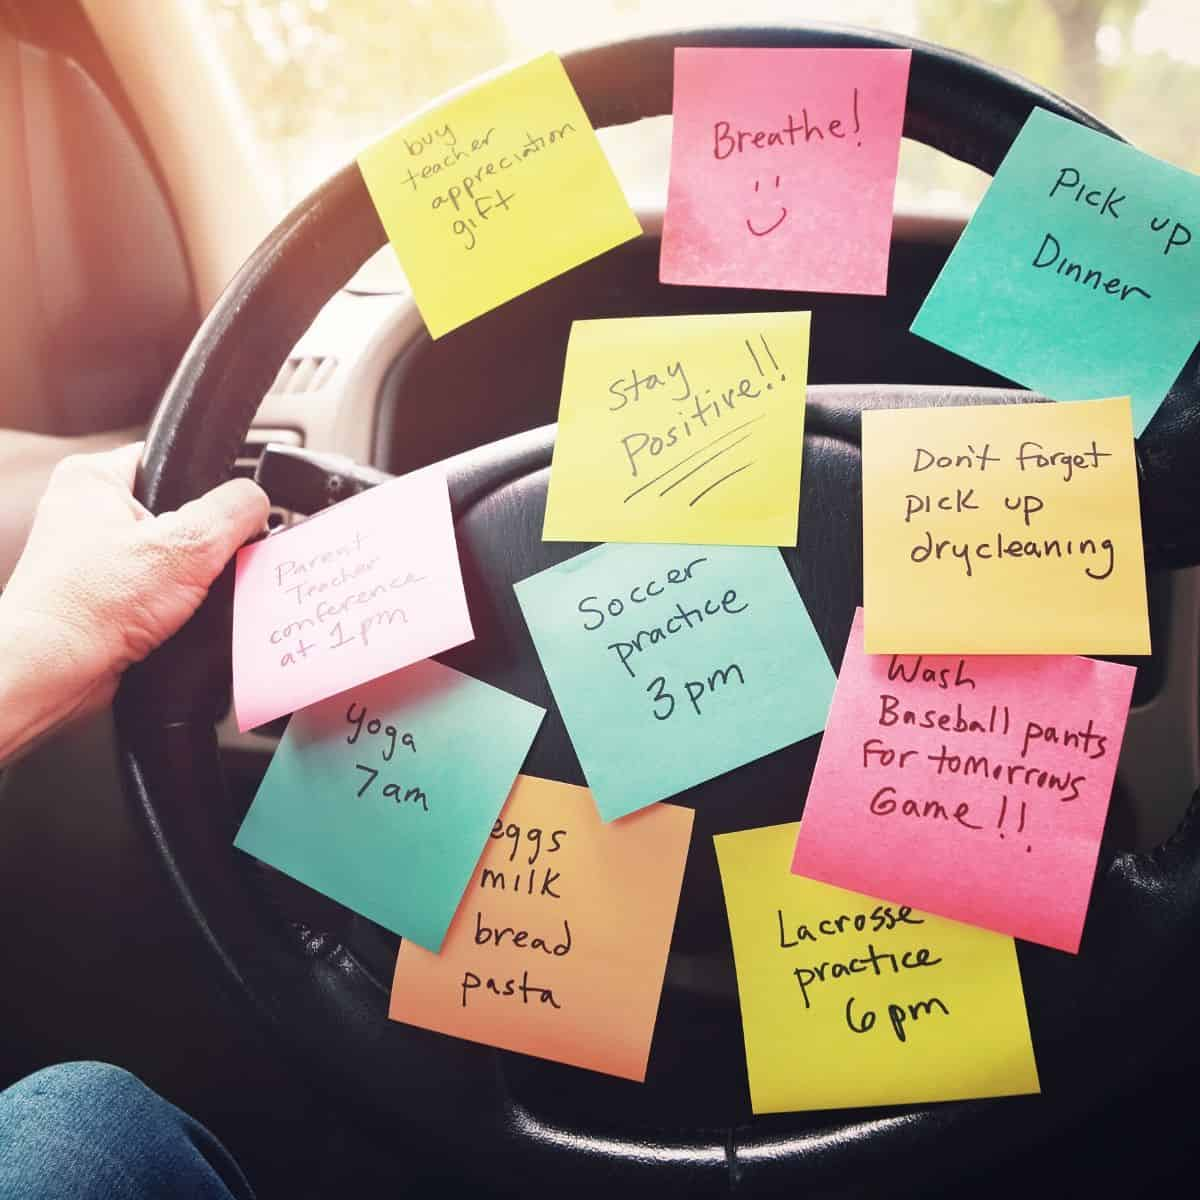 Stirring wheel with sticky notes showing a to-do list and positive notes for mom